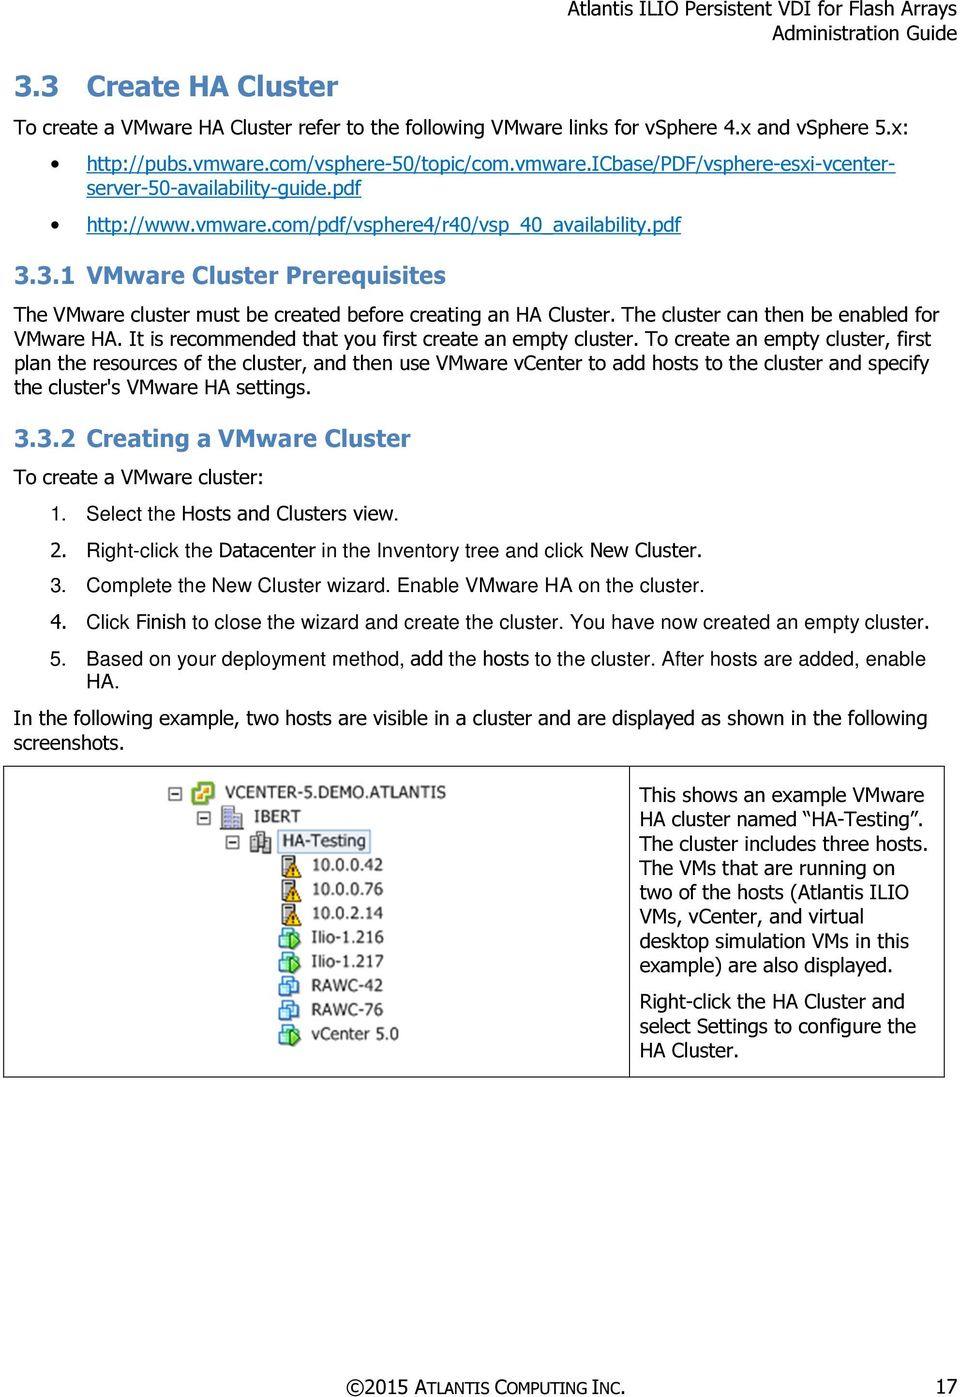 3.1 VMware Cluster Prerequisites The VMware cluster must be created before creating an HA Cluster. The cluster can then be enabled for VMware HA.